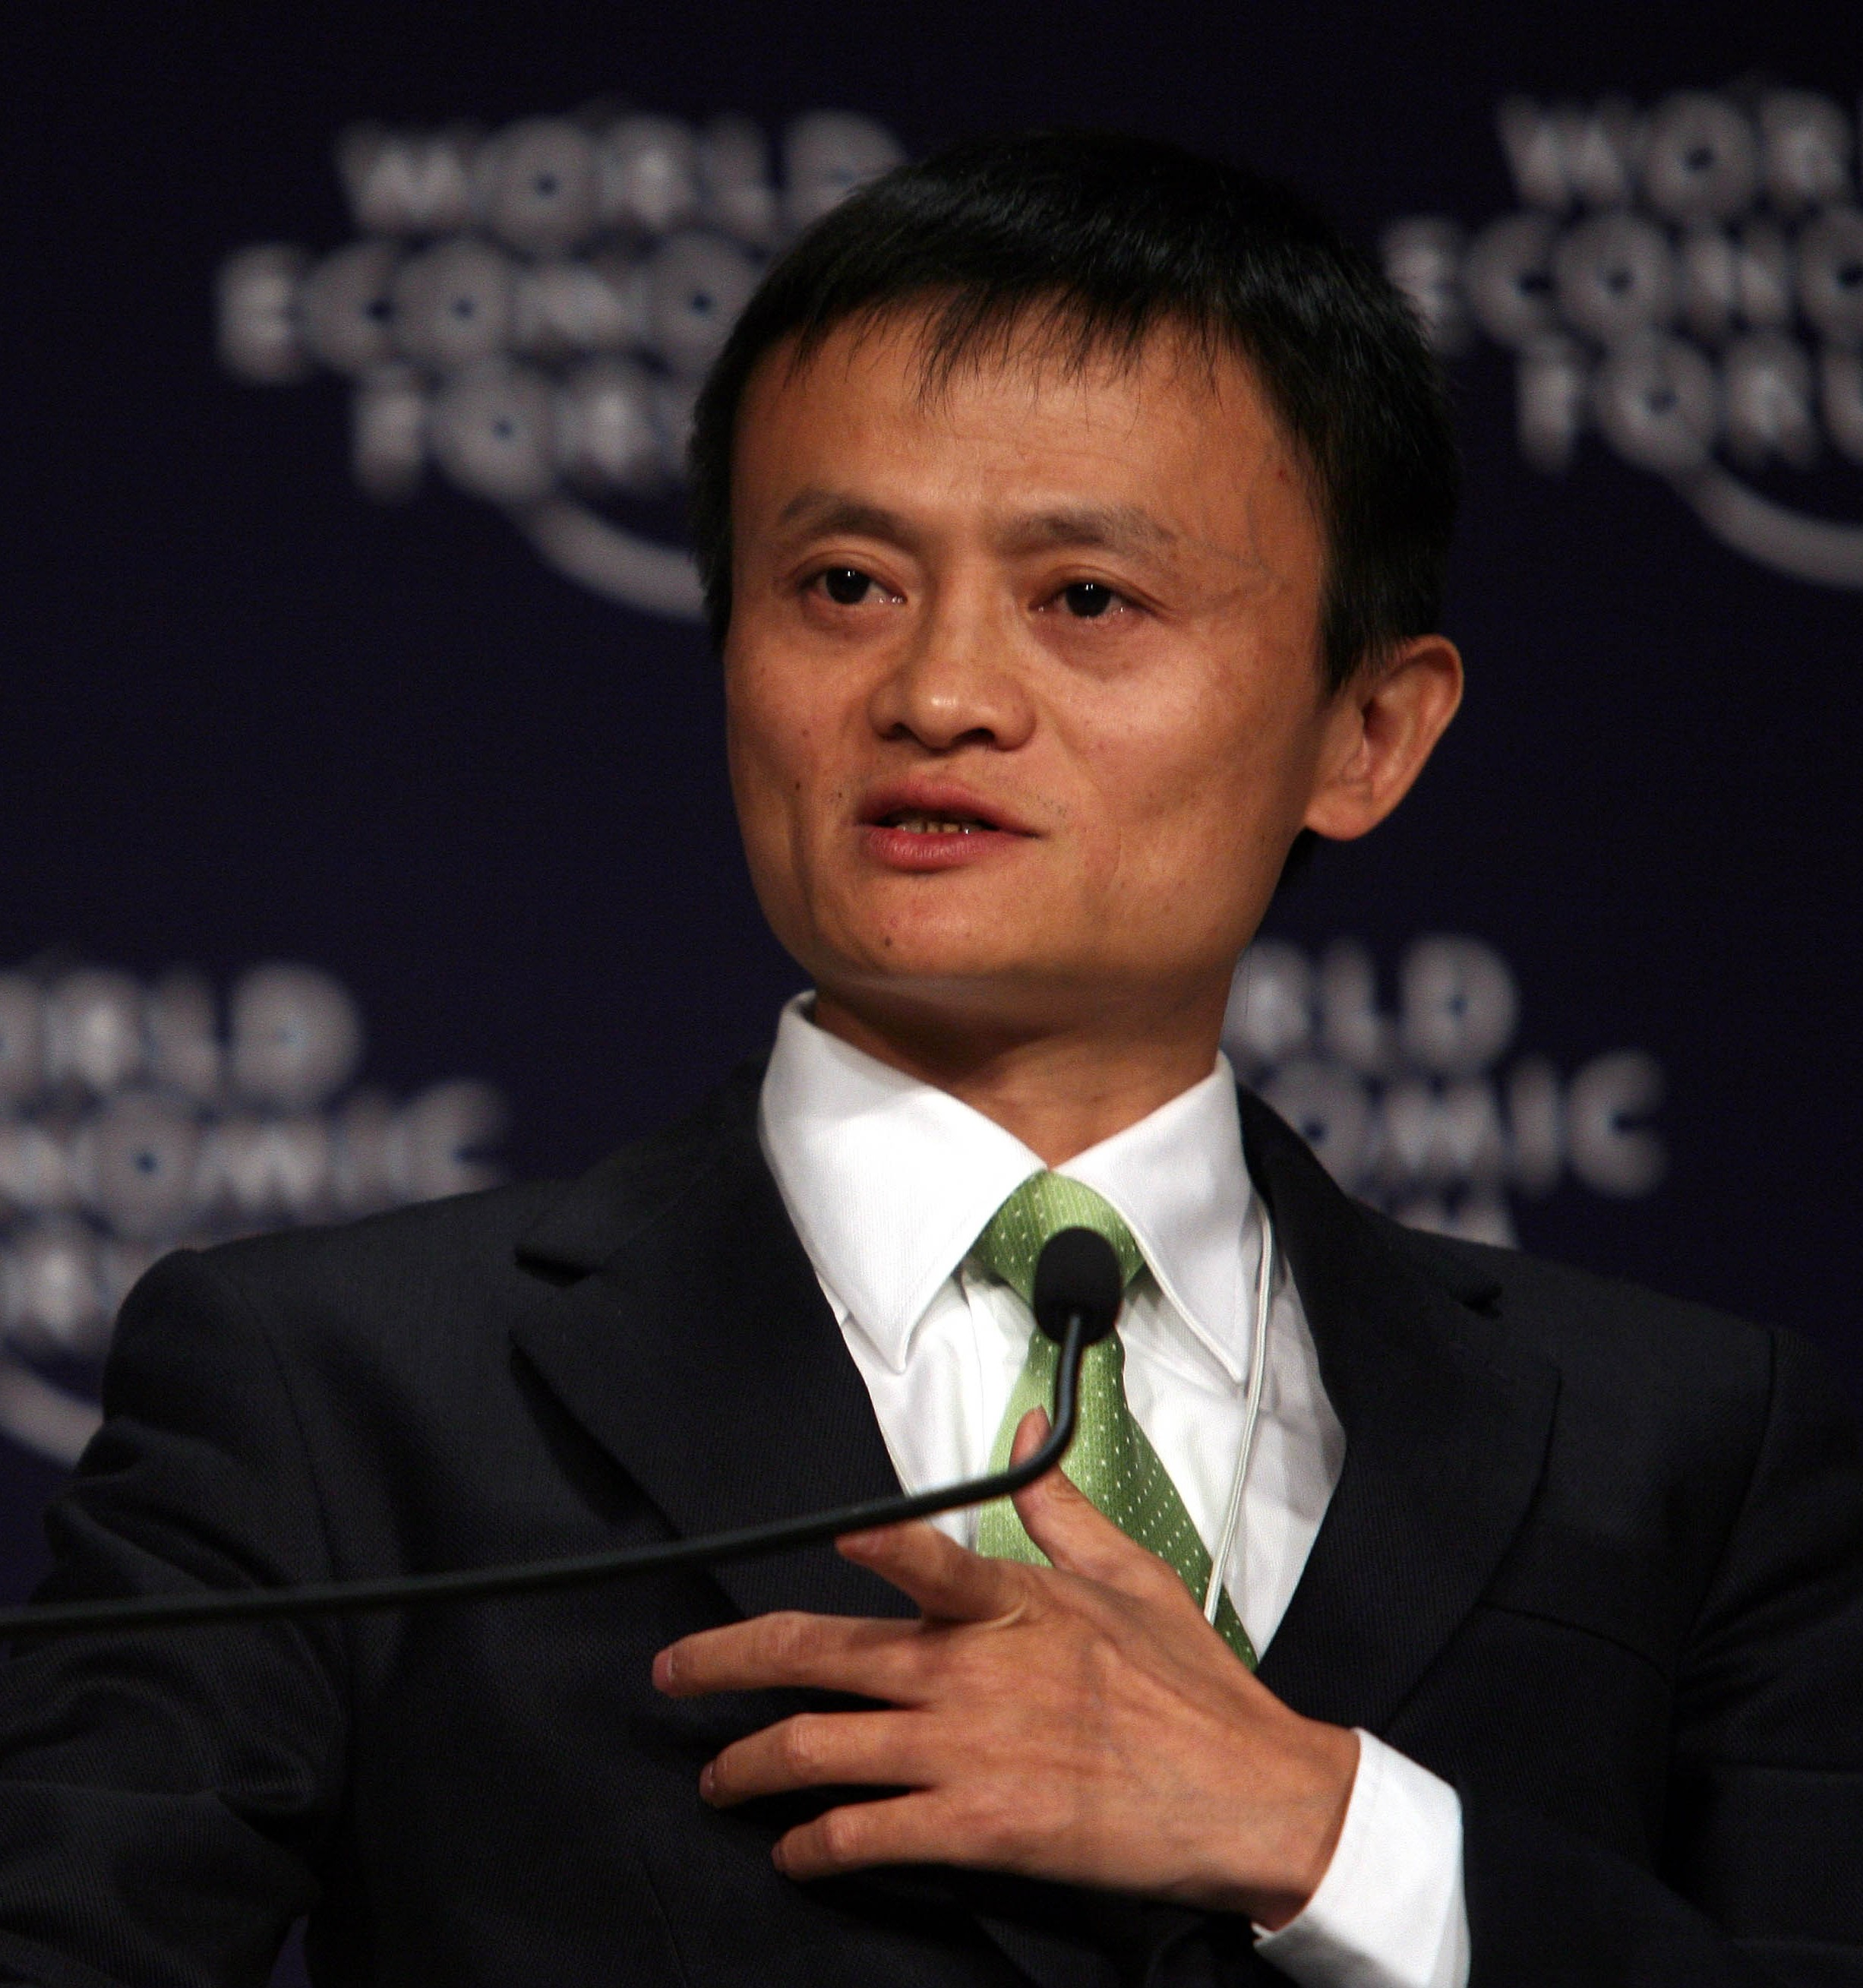 Jack Ma, a taipan who owns Alibaba Group